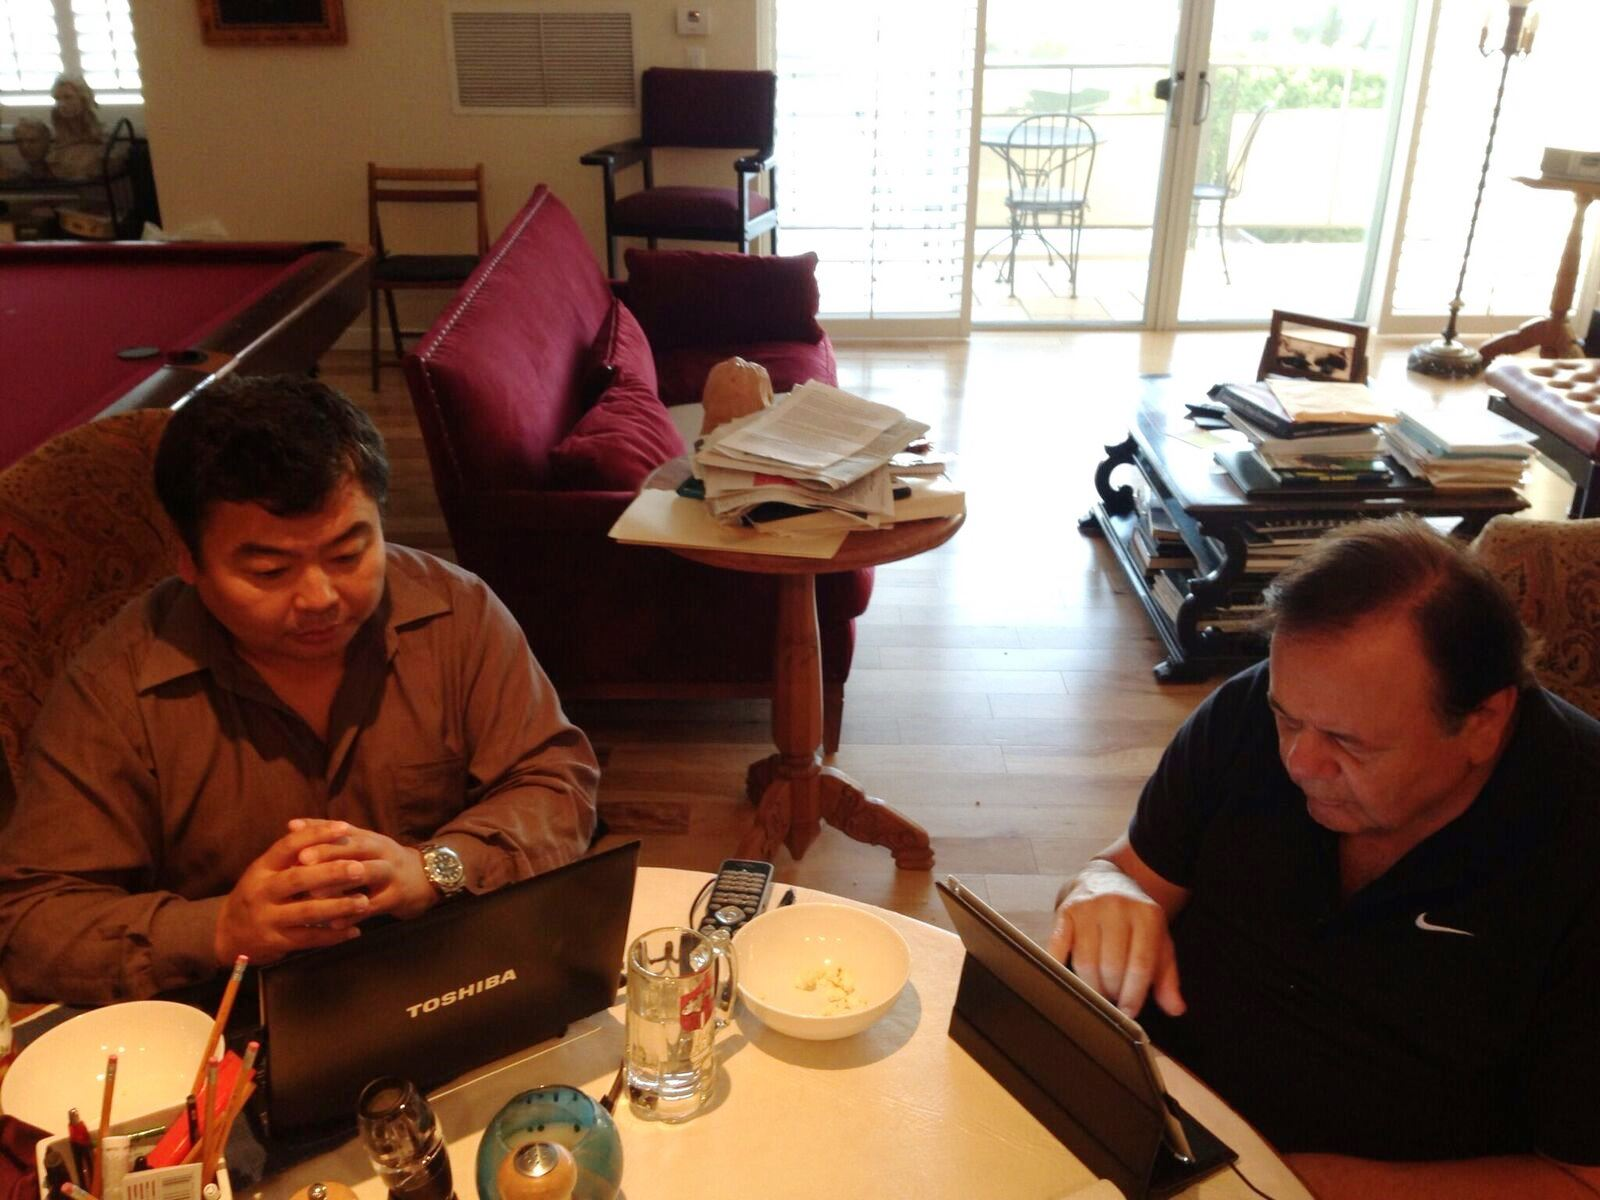 Paul Sorvino and I work on a script